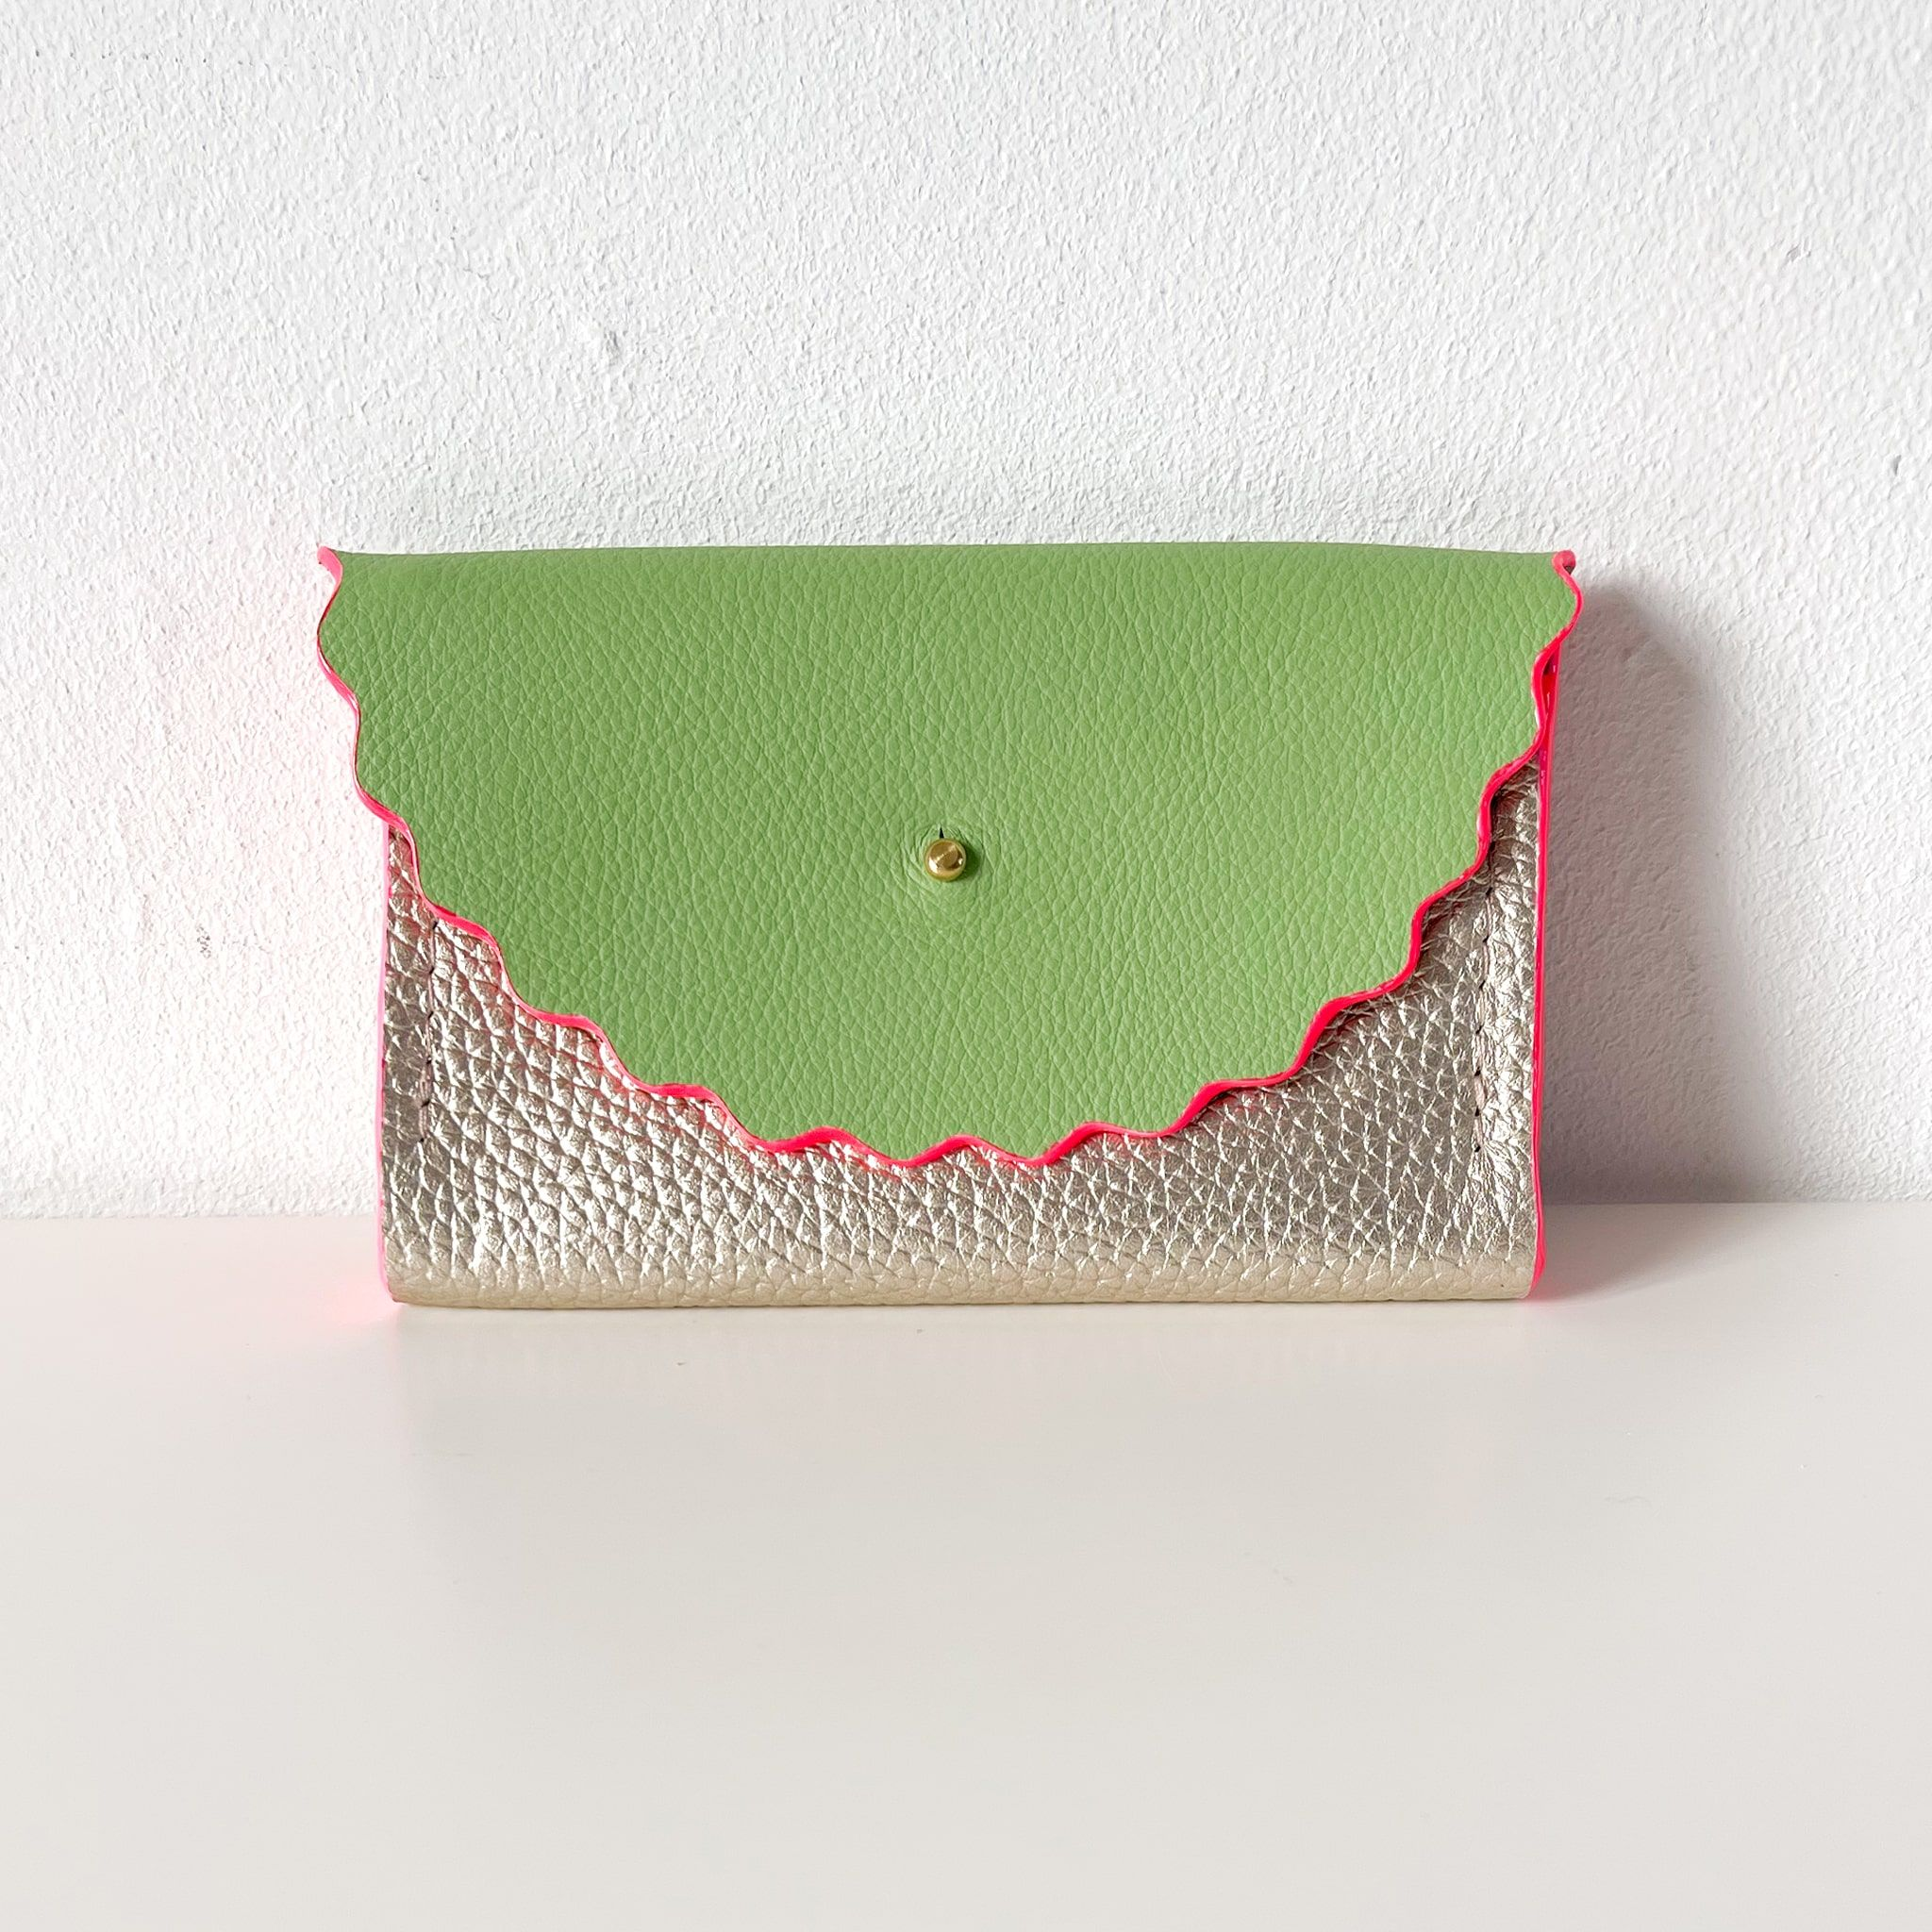 Green & Champagne Silver Dora Purse with Neon Pink Edges